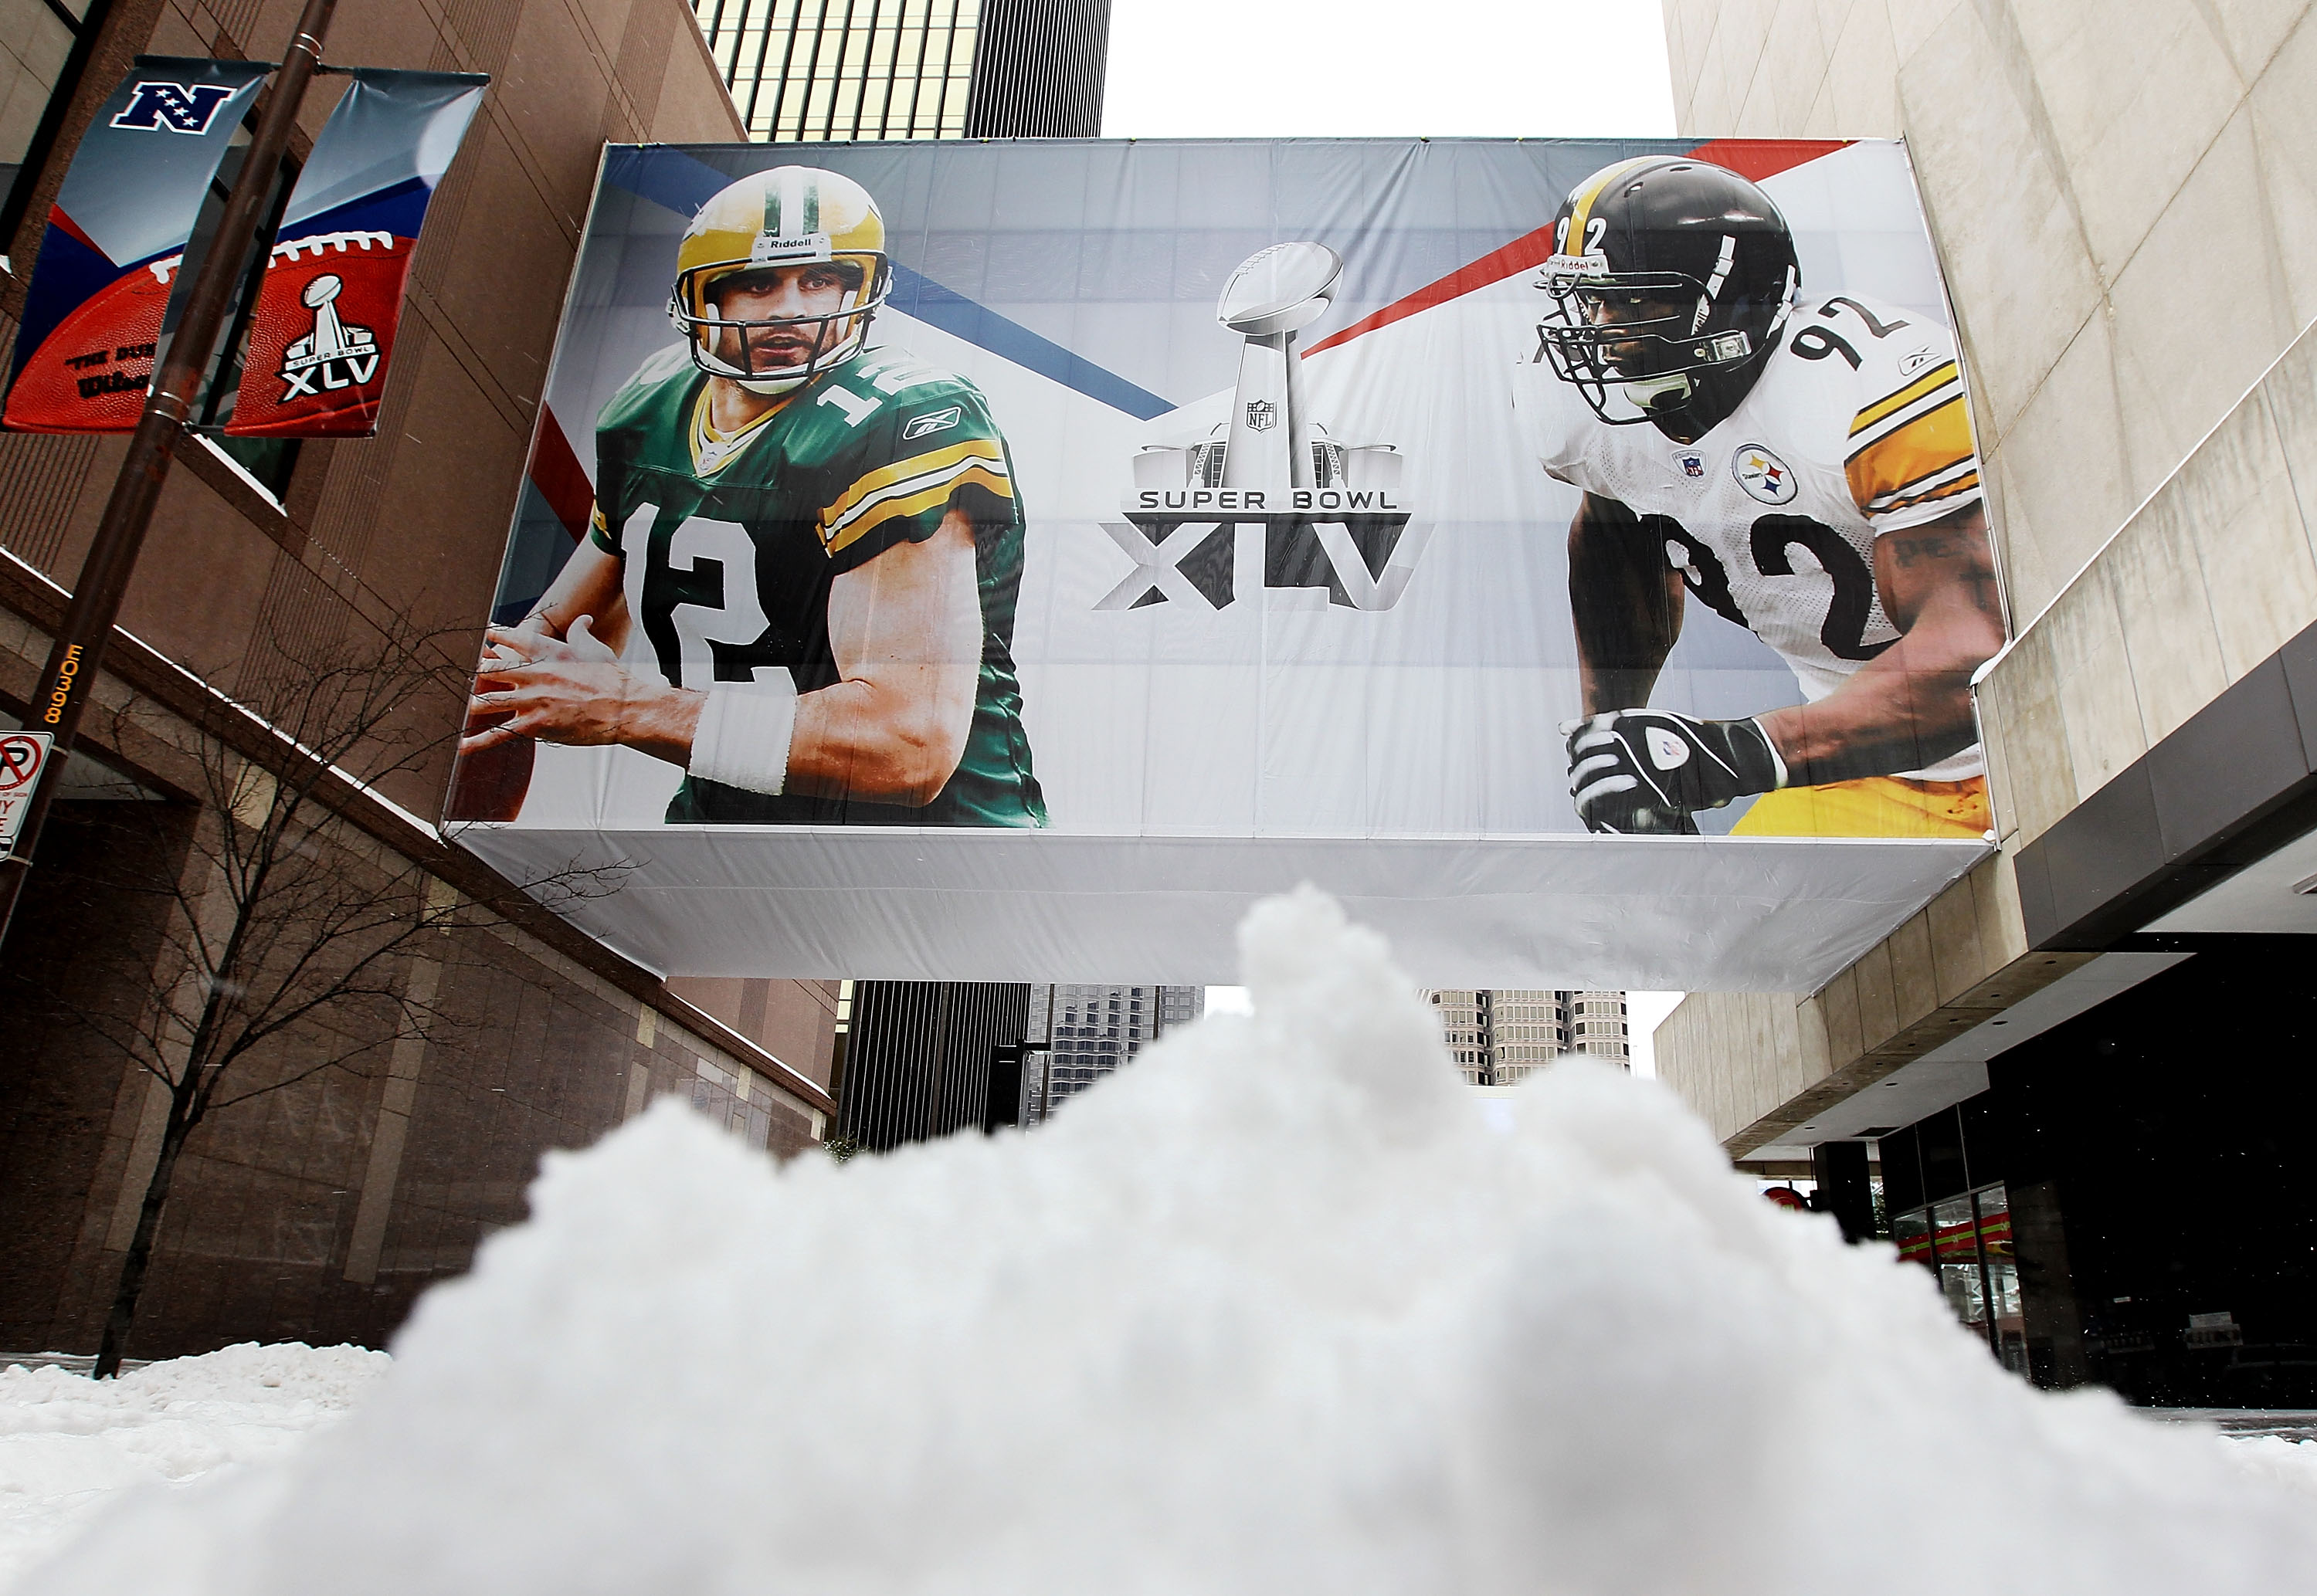 DALLAS - FEBRUARY 04:  Snow is piled up on the street after a snow storm hit the Dallas area February 4, 2011 in Dallas, Texas. More than four inches of snow fell overnight in the North Texas area. The Green Bay Packers will play the Pittsburgh Steelers i